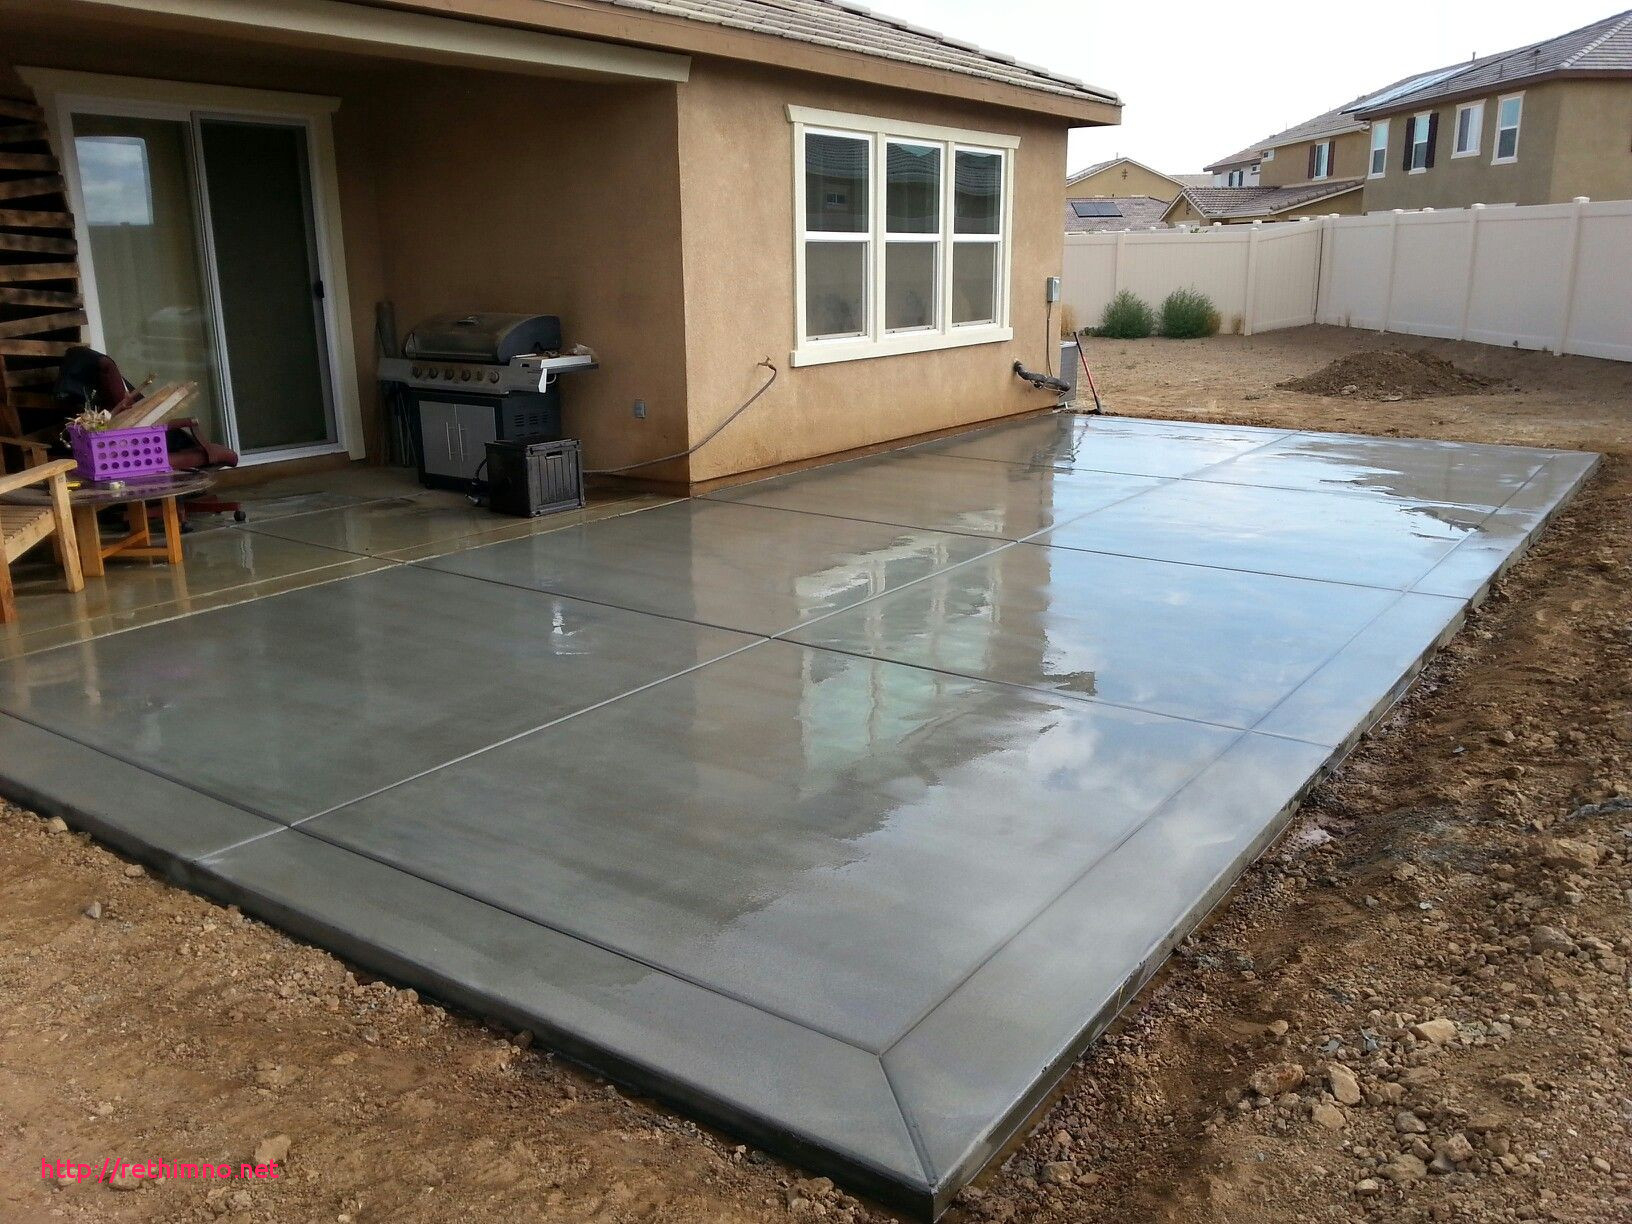 Beautiful Concrete Slab Backyard Ideas Rethimno regarding Backyard Concrete Slab Ideas